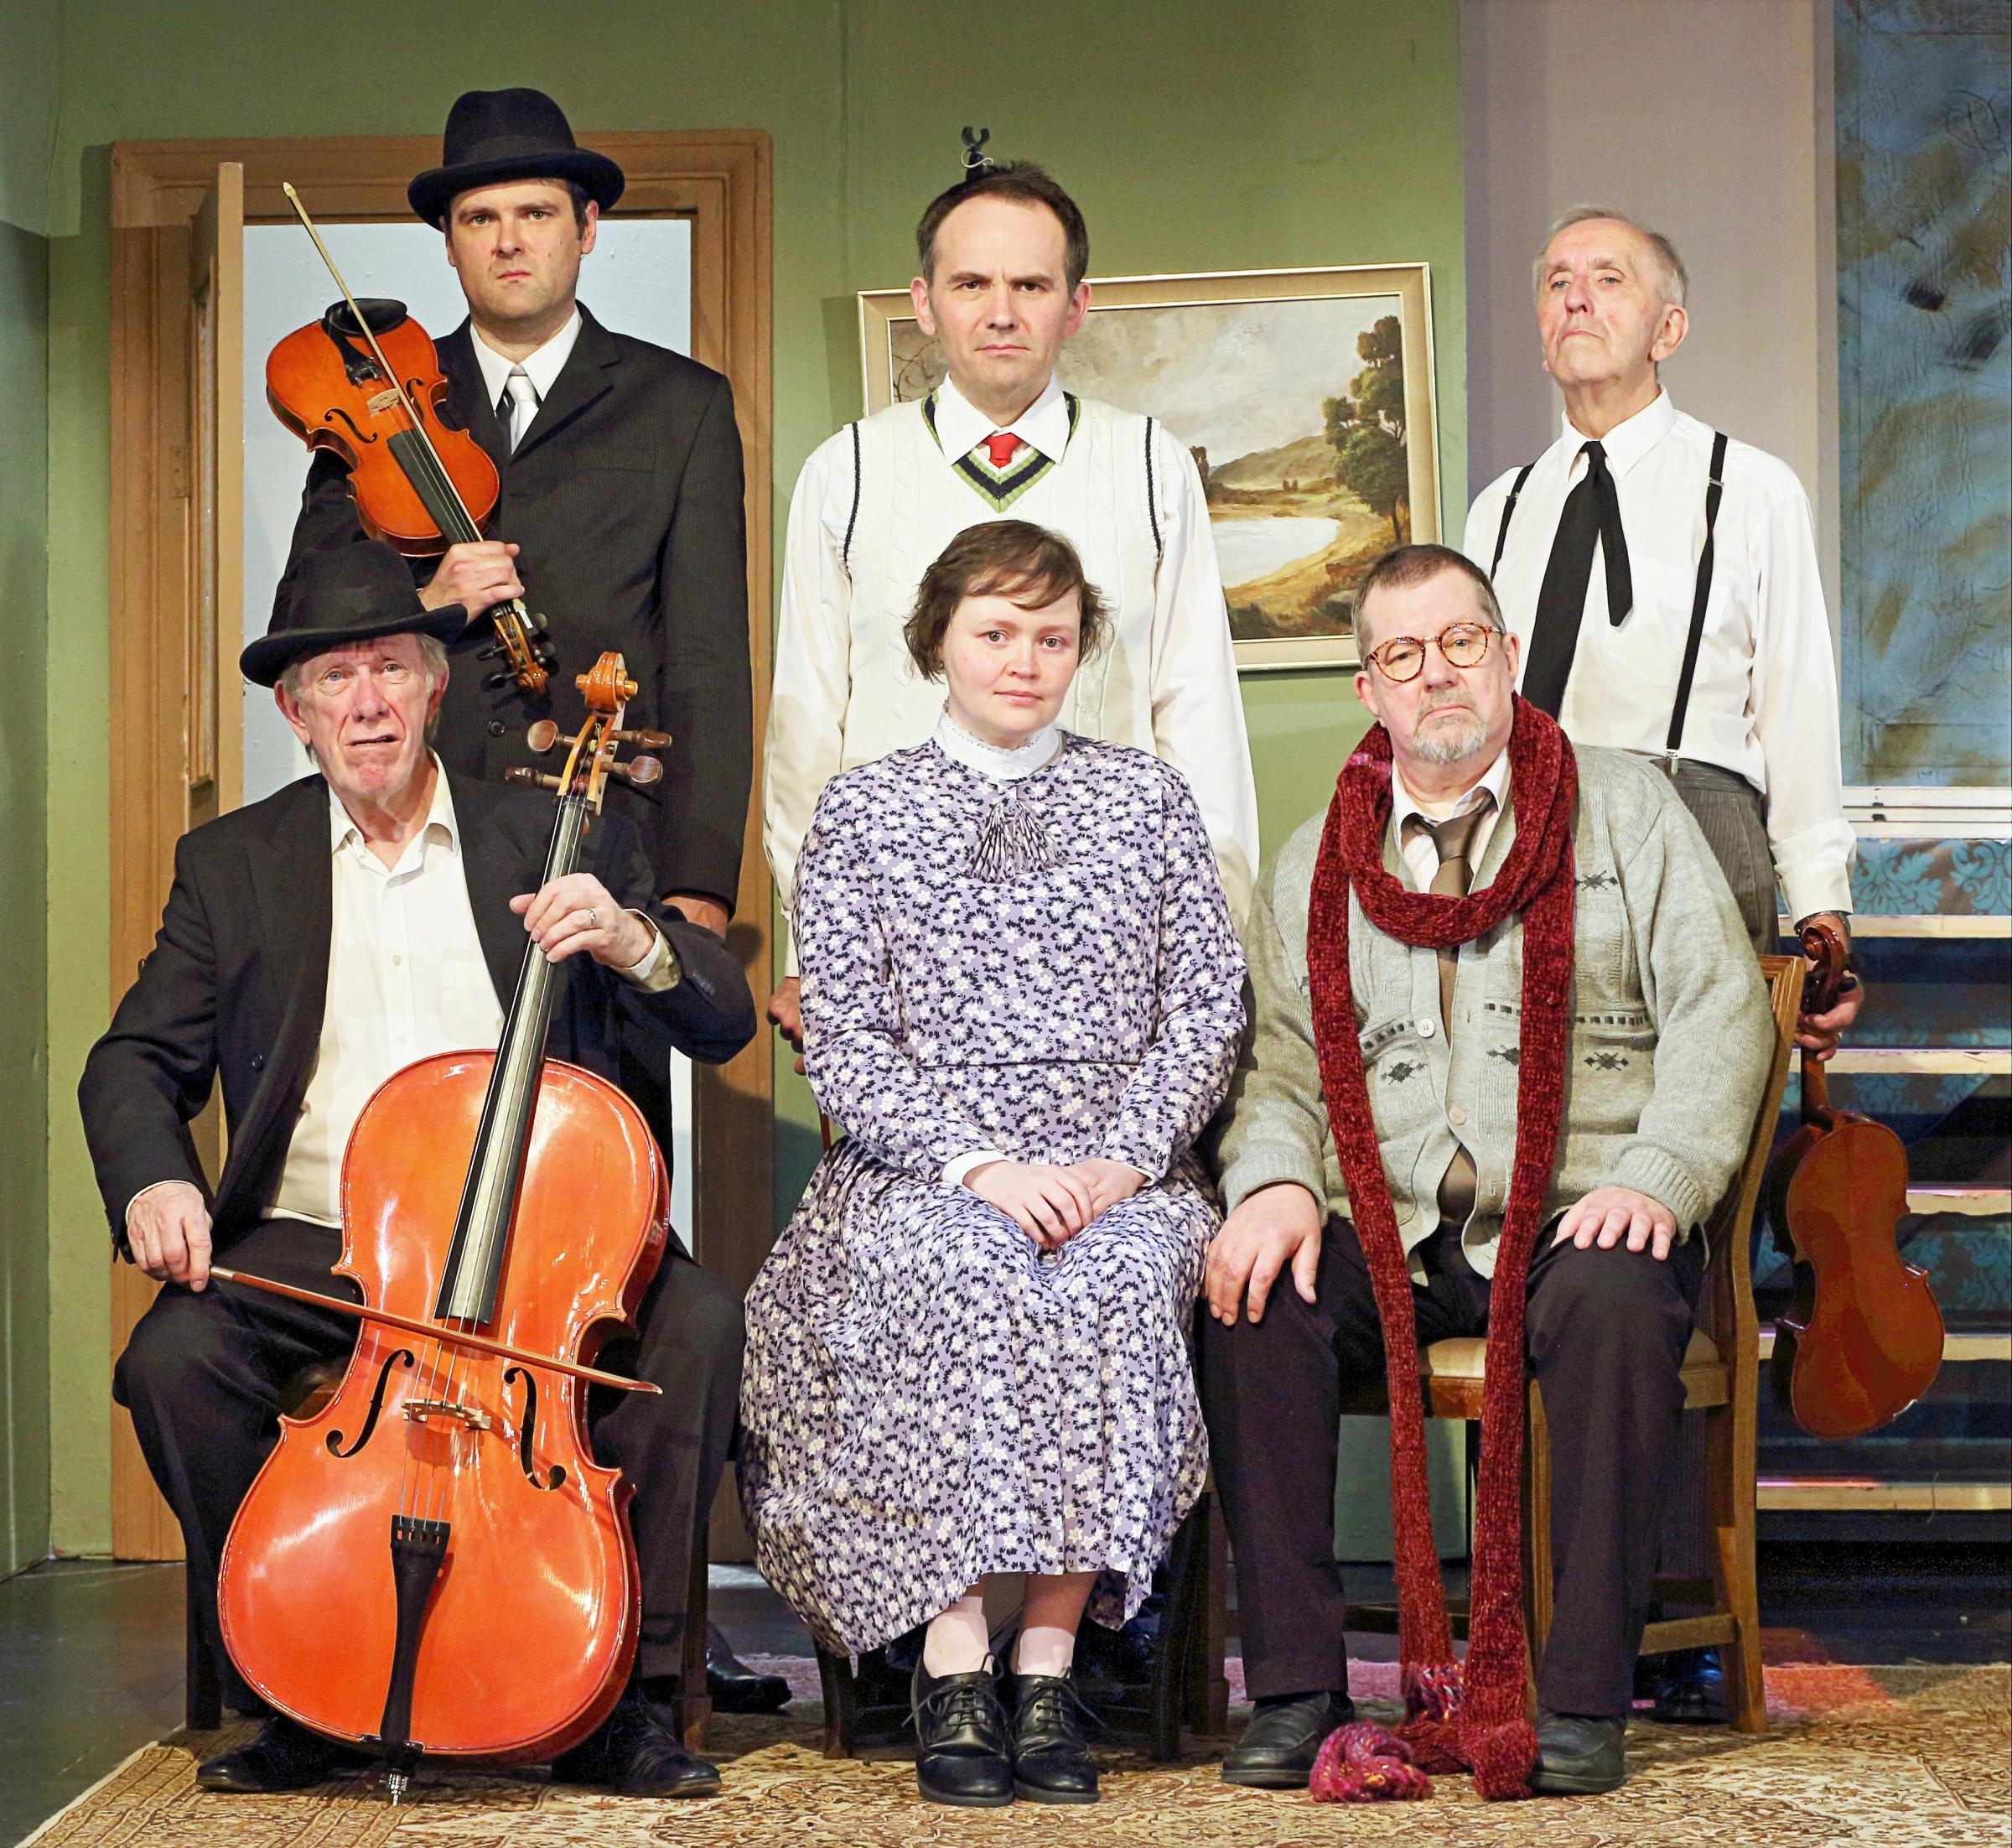 L-r (standing) Gareth May as Louis, James Silvers as Harry, Maurice Felton as Major Courtney, (seated) John Lucock as One Round, Claire Hetherington as Mrs Wilberforce, Tony Stamp as Professor Marcus.